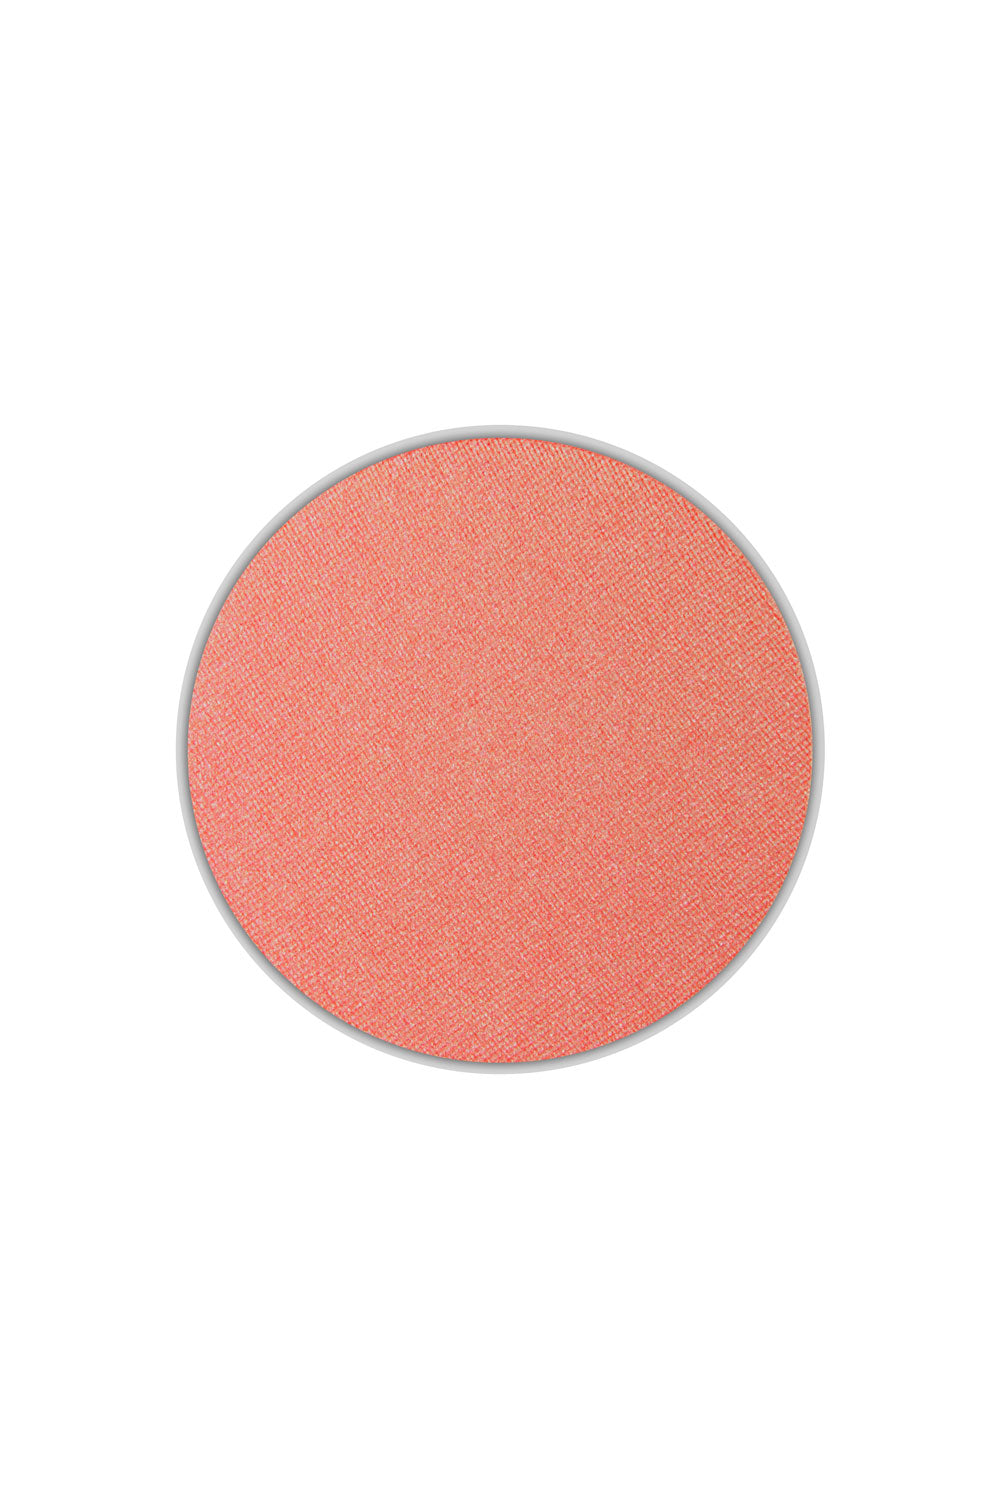 Type 3 Eyeshadow - Coral Peach